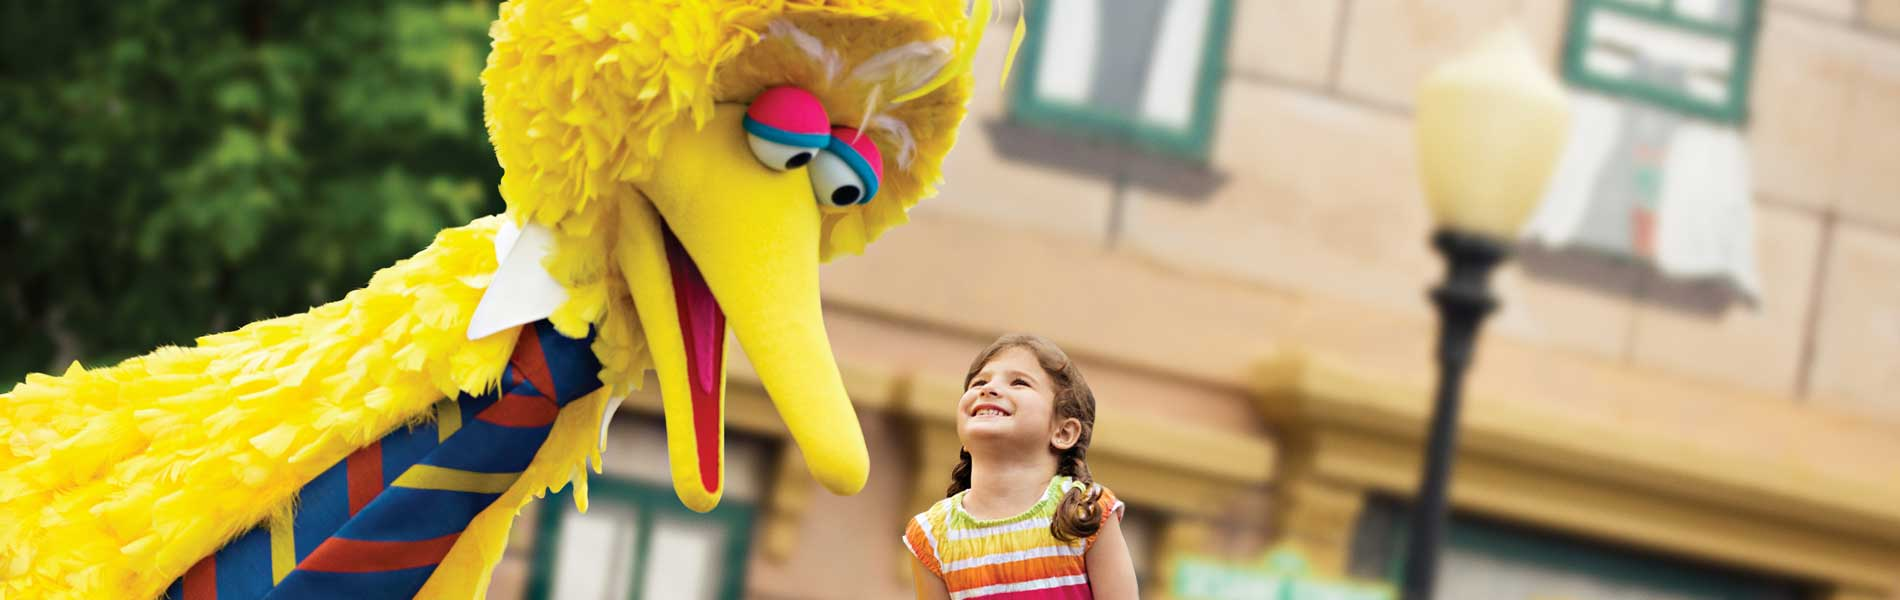 Big Bird and a young girl at Sesame Place theme park